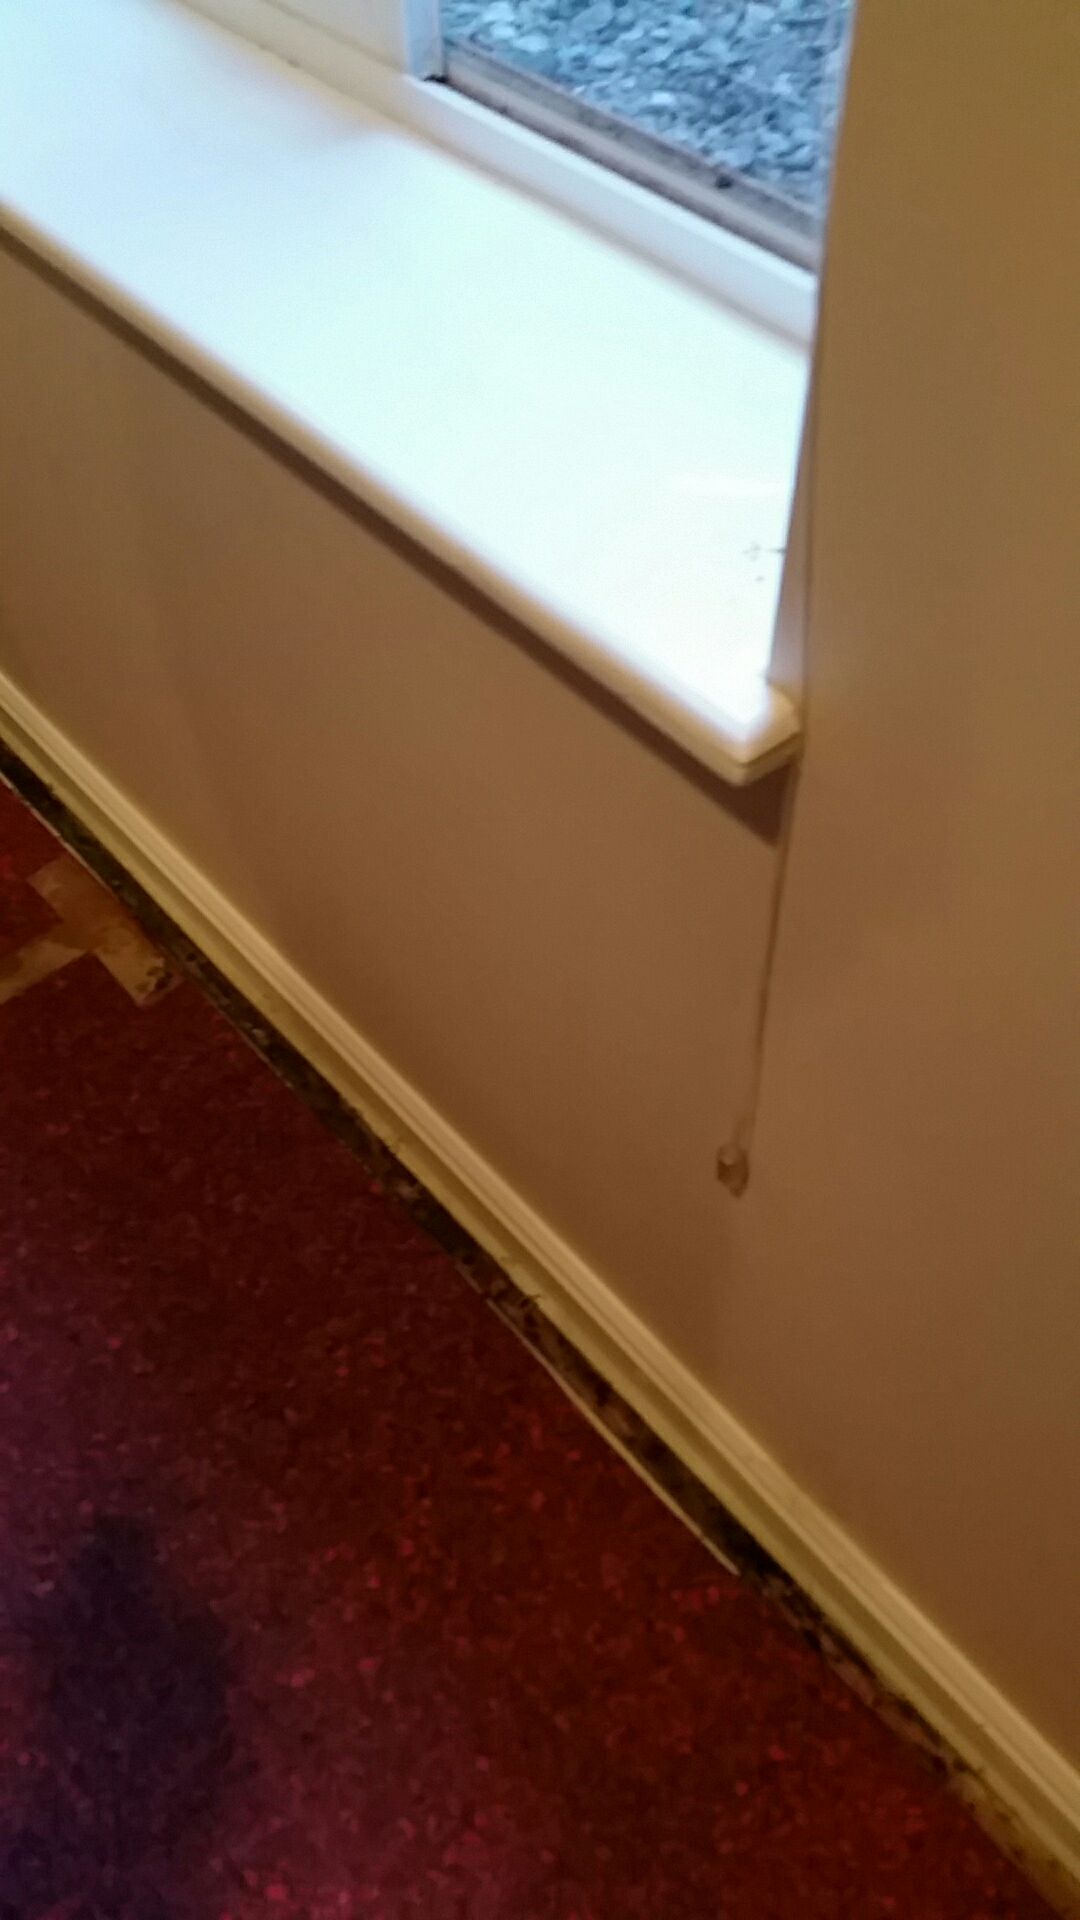 Ogden, UT - Mold inspection window weel leaked several times causing microbial growth